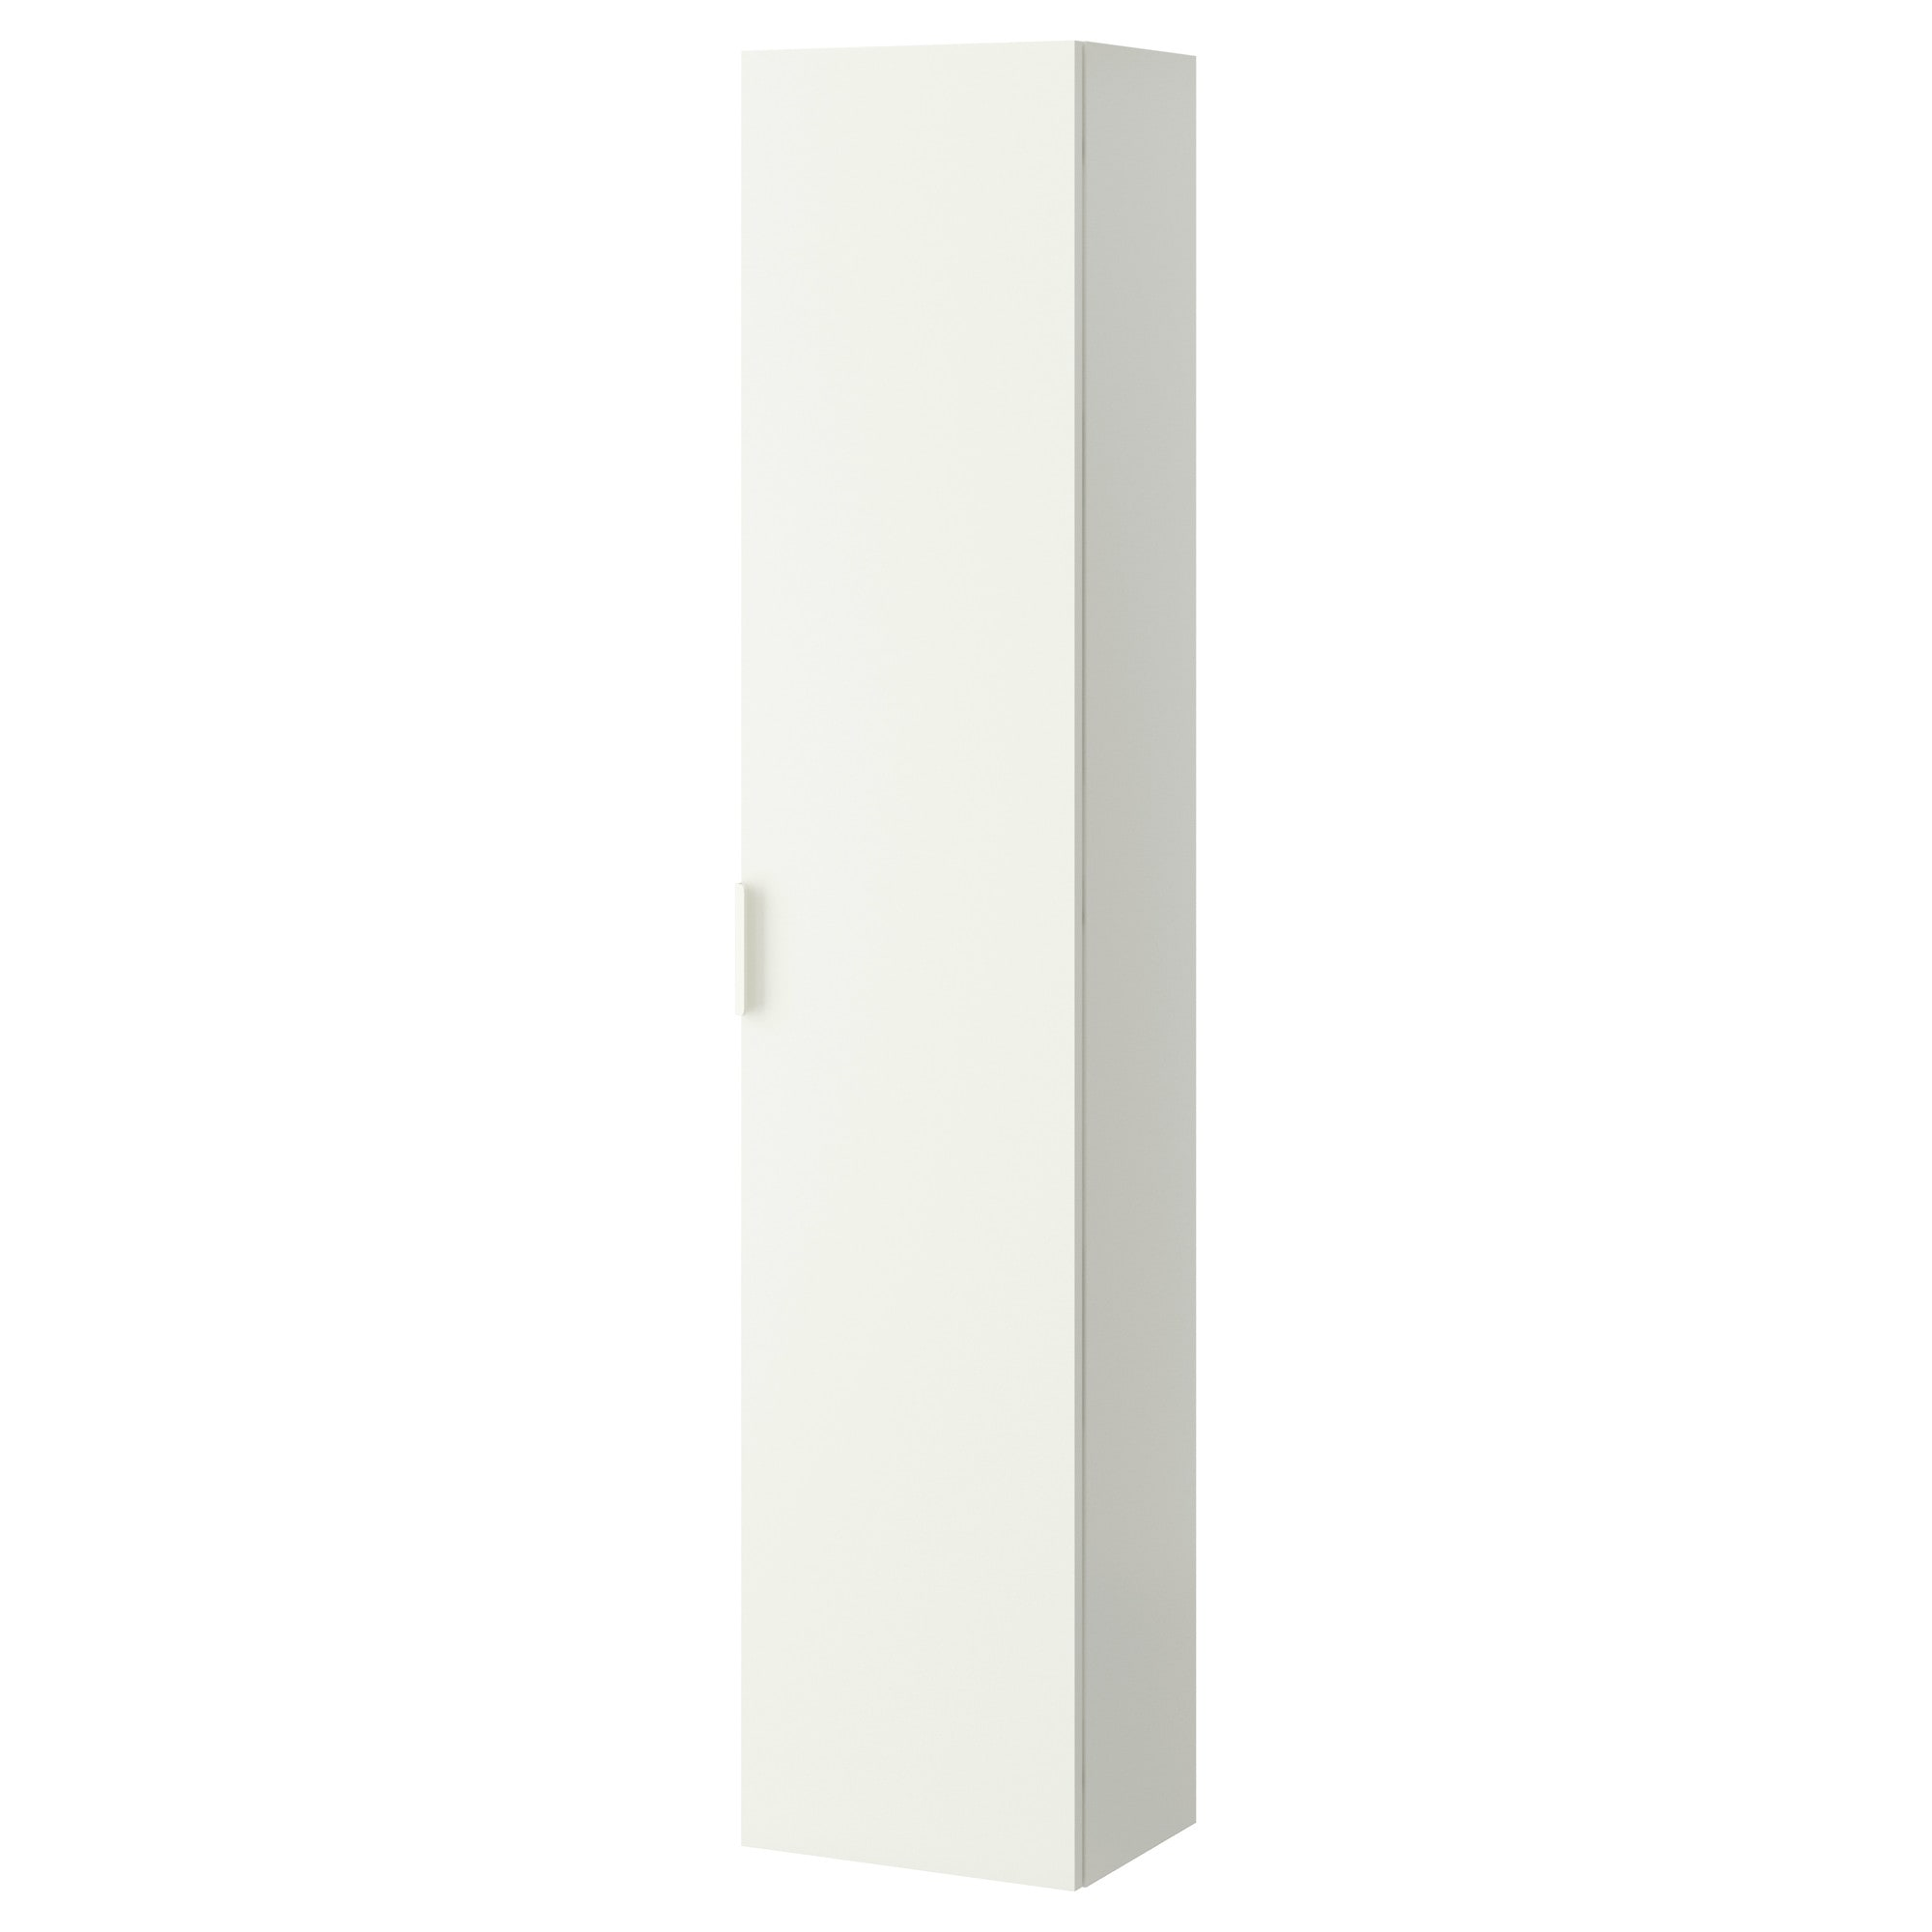 GODMORGON High cabinet white IKEA